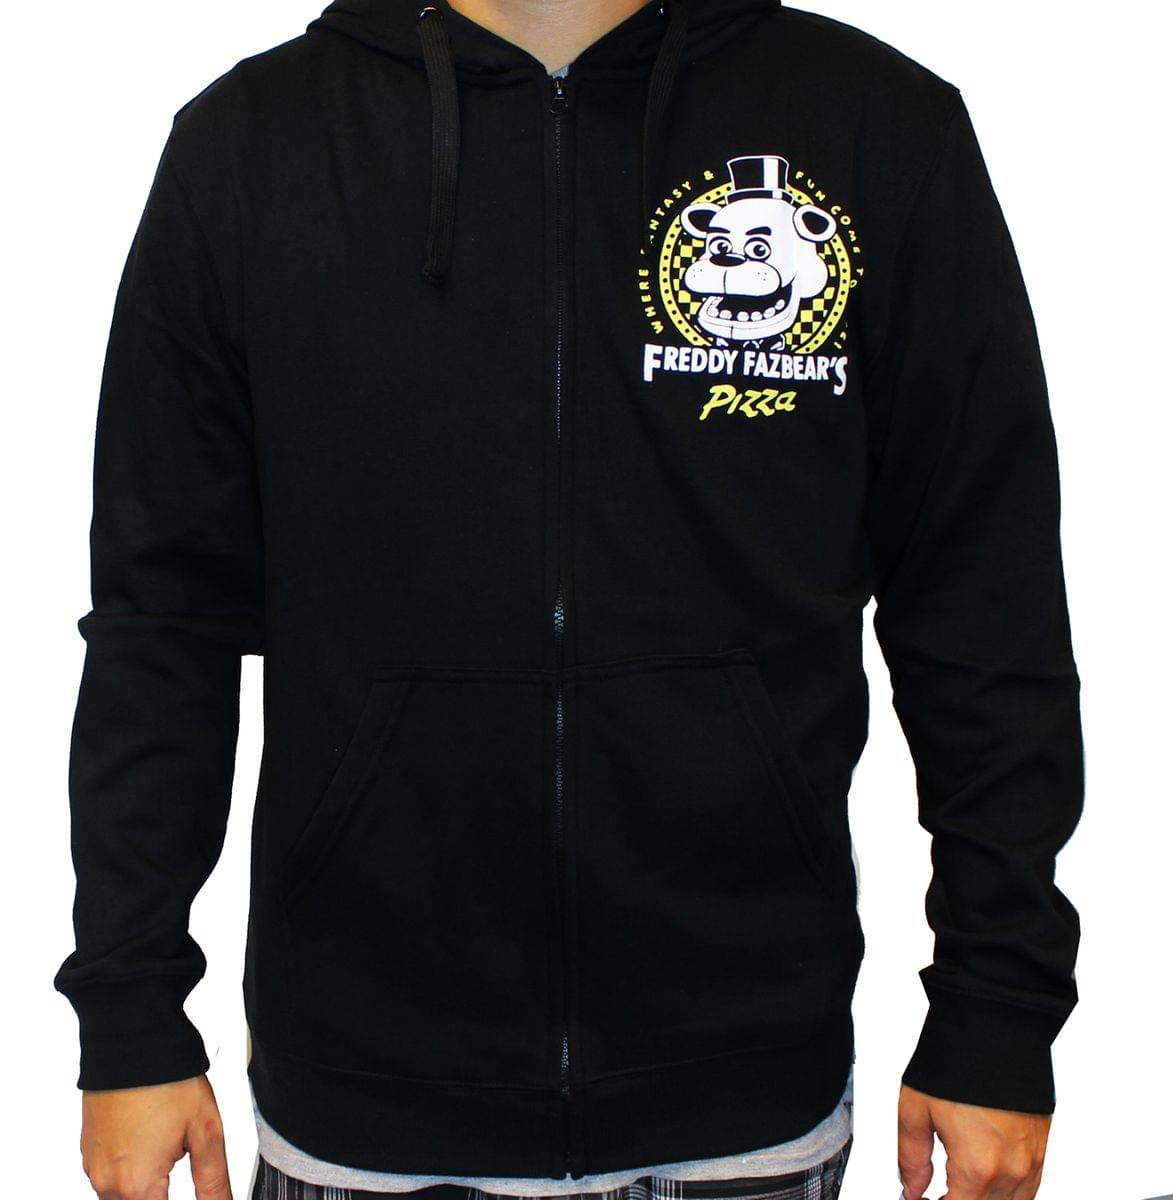 Five Nights At Freddy's Freddy Fazbear's Pizza Adult Hoodie Medium